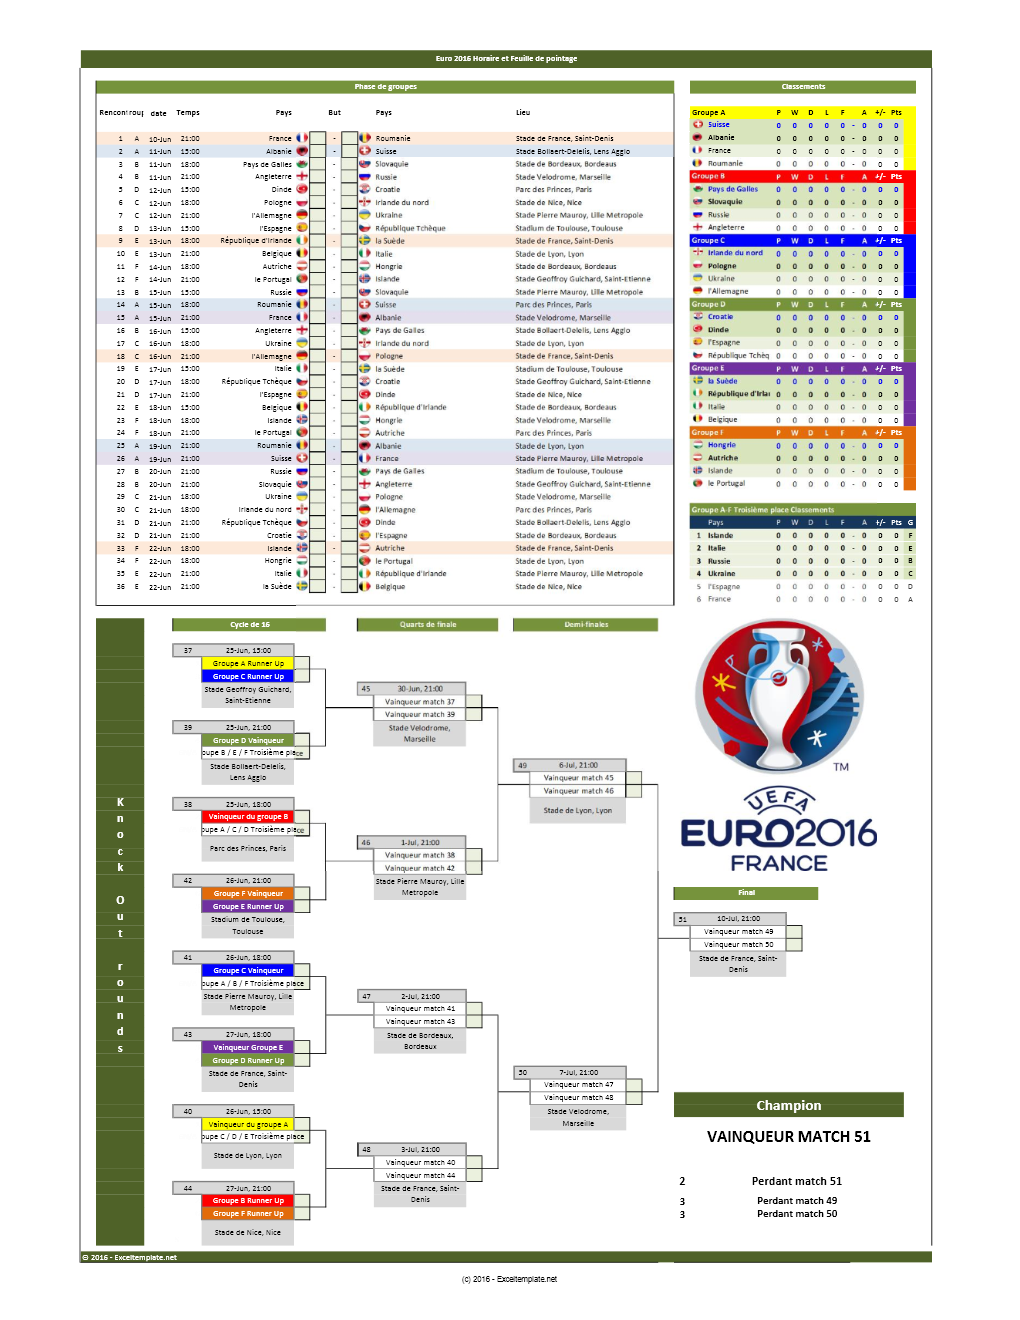 Championnat d 39 europe de football 2016 calendrier et feuille de match tableau excel - Calendrier coupe d europe 2016 ...